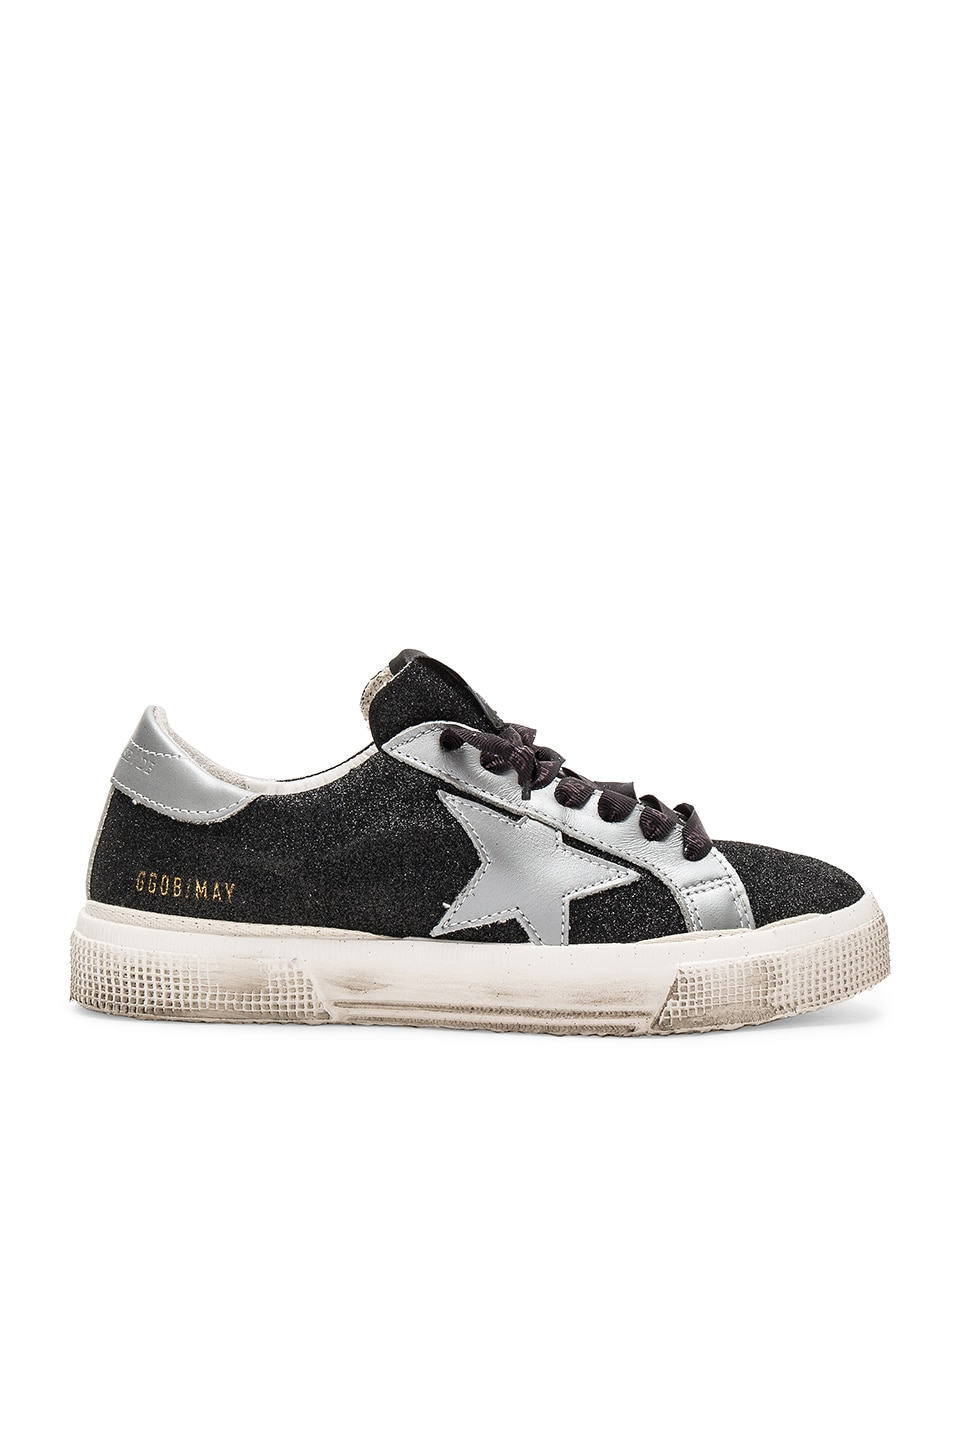 Golden Goose May Sneaker in Black Glitter